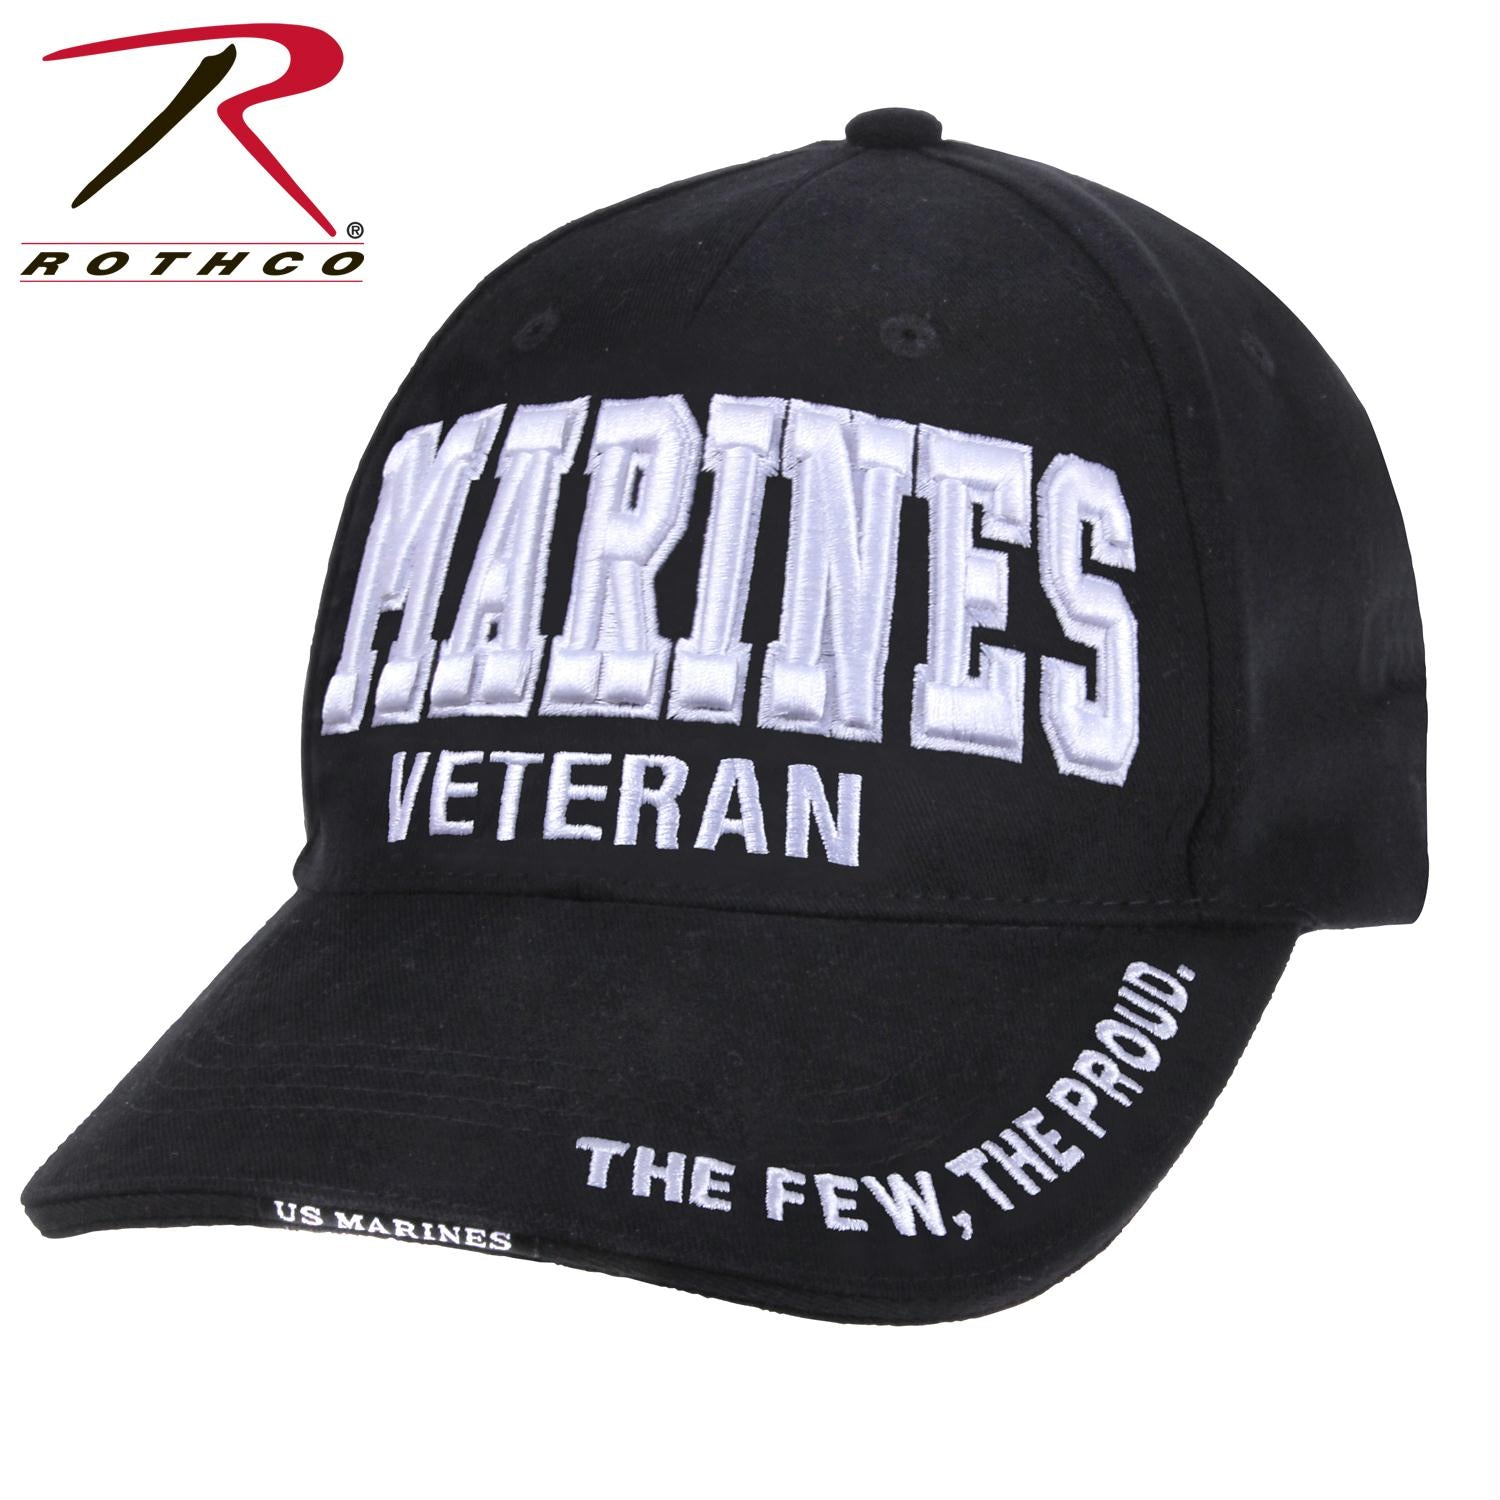 Rothco Deluxe Marines Veteran-Low Profile Cap - Black / White / One Size